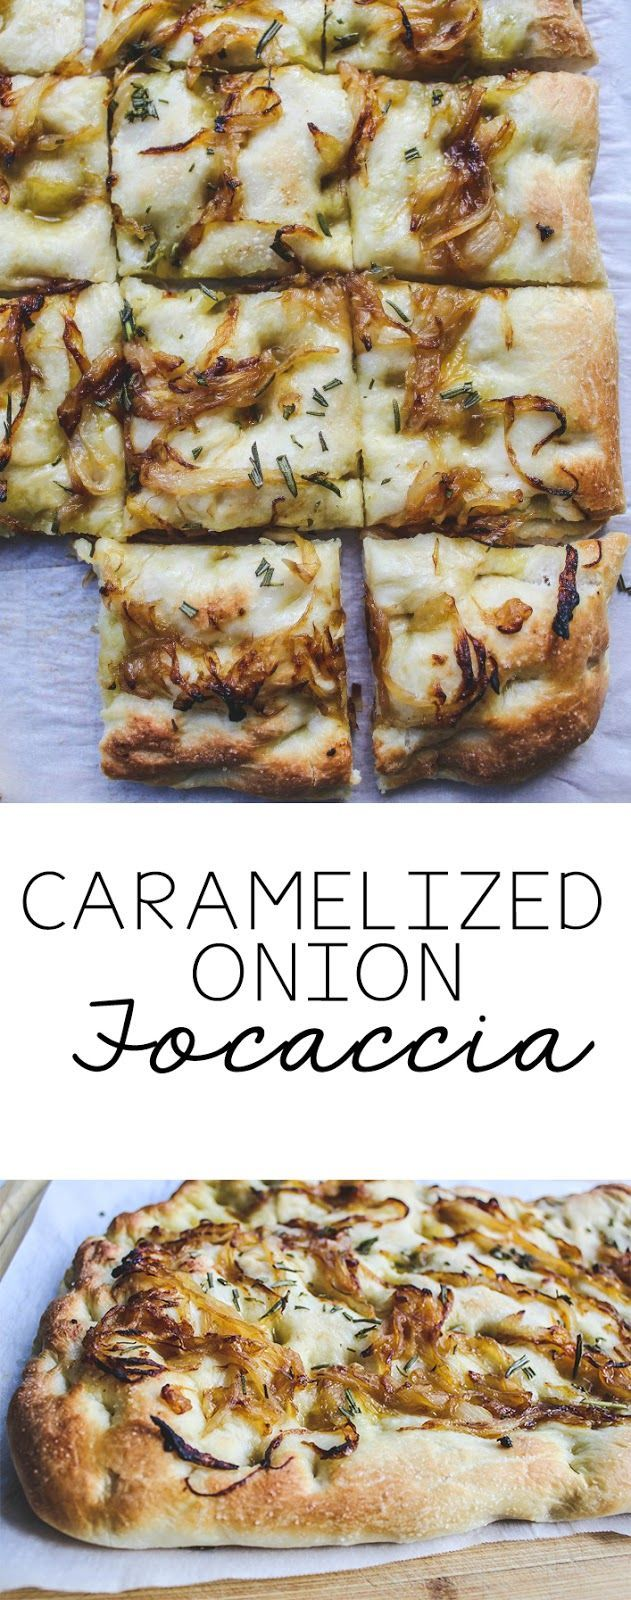 Rosemary And Caramelized Onion Focaccia Vegan Recipe Recipes Bread Recipes Homemade Bread Toppings